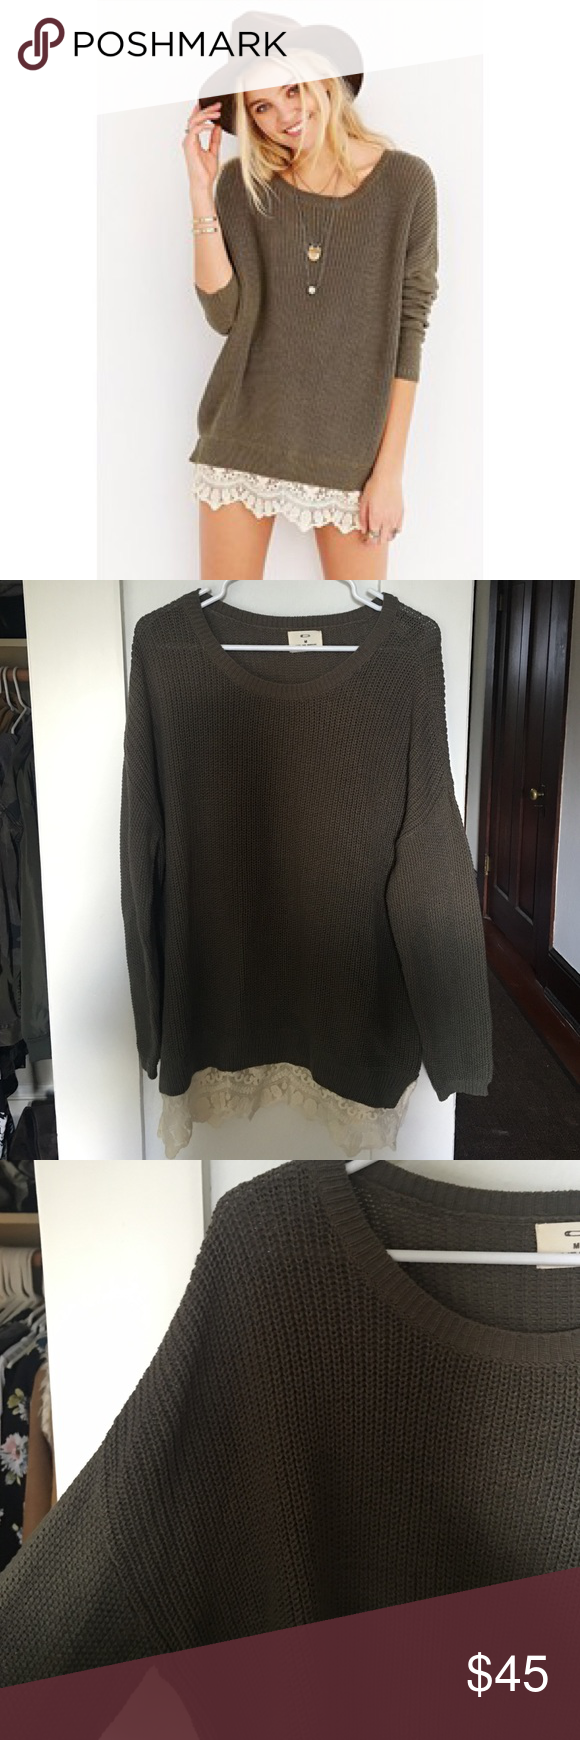 Lace sweater Never been worn just been sitting in my closet doesn't fit me right.  No trades or modeling please! Brand is pins and needles. Urban Outfitters Sweaters Crew & Scoop Necks